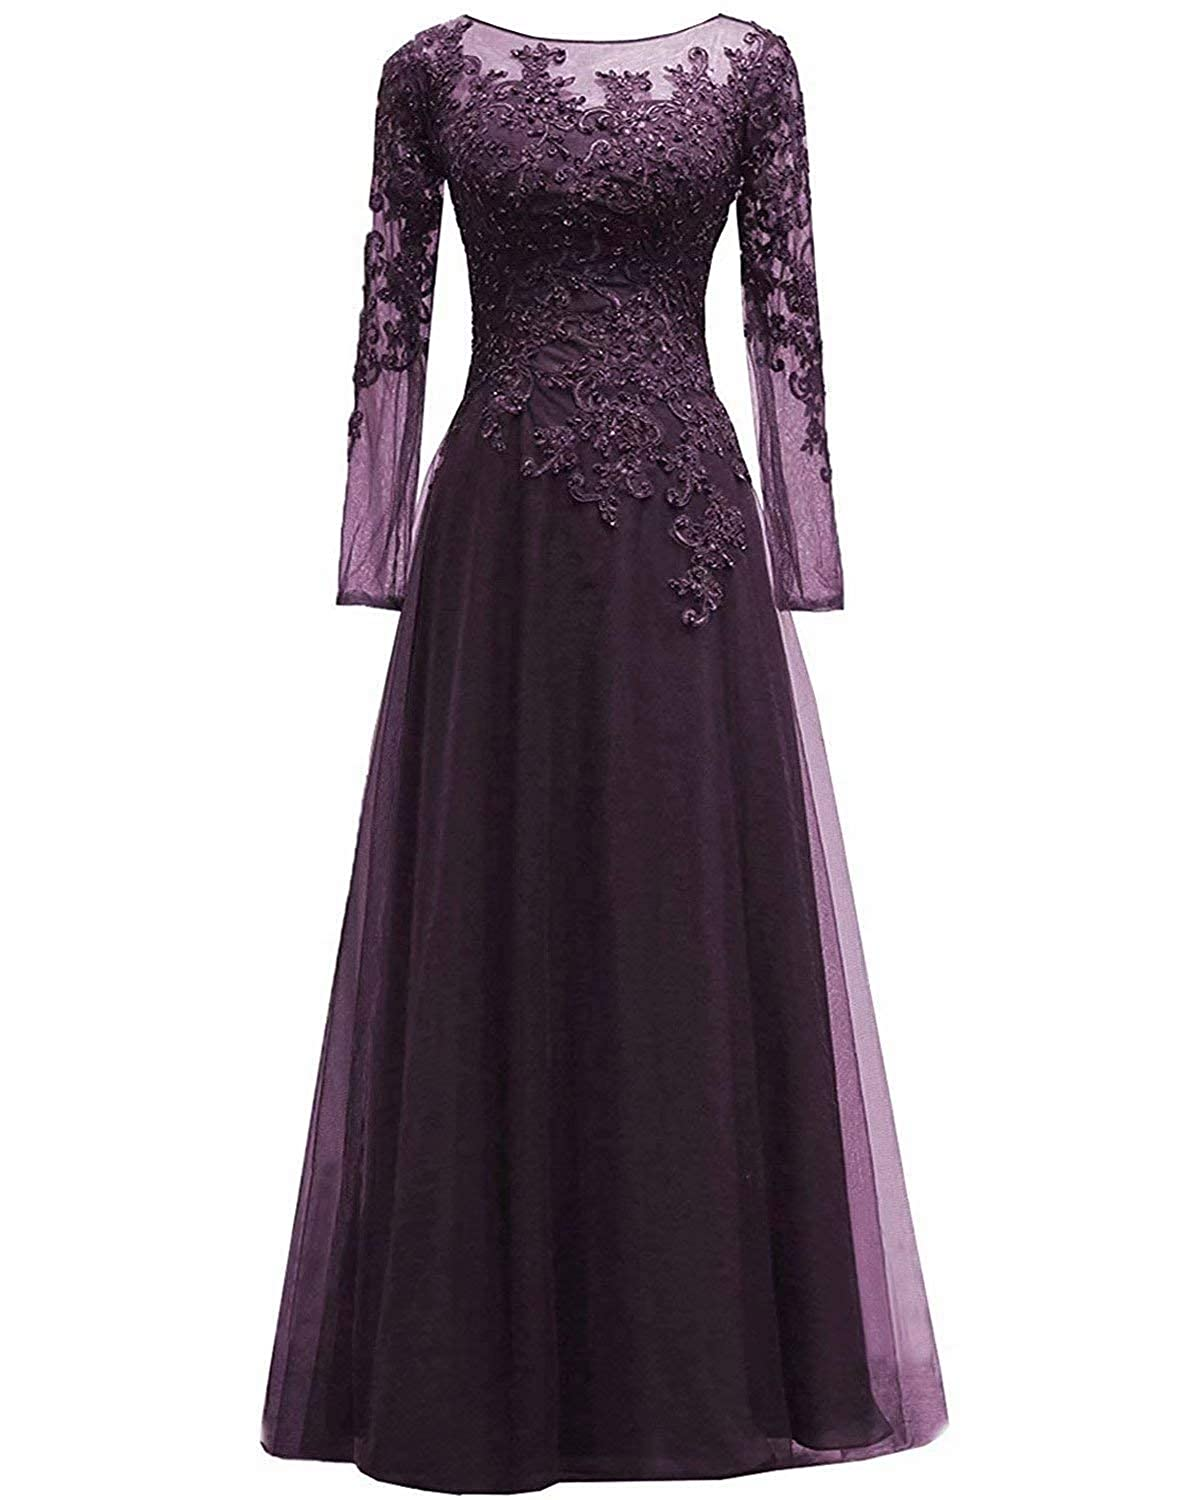 1900 -1910s Edwardian Fashion, Clothing & Costumes Womens Lace Appliques Mother of The Bride Dress Tulle Long Sleeves Evening Prom Gown Beaded $89.99 AT vintagedancer.com